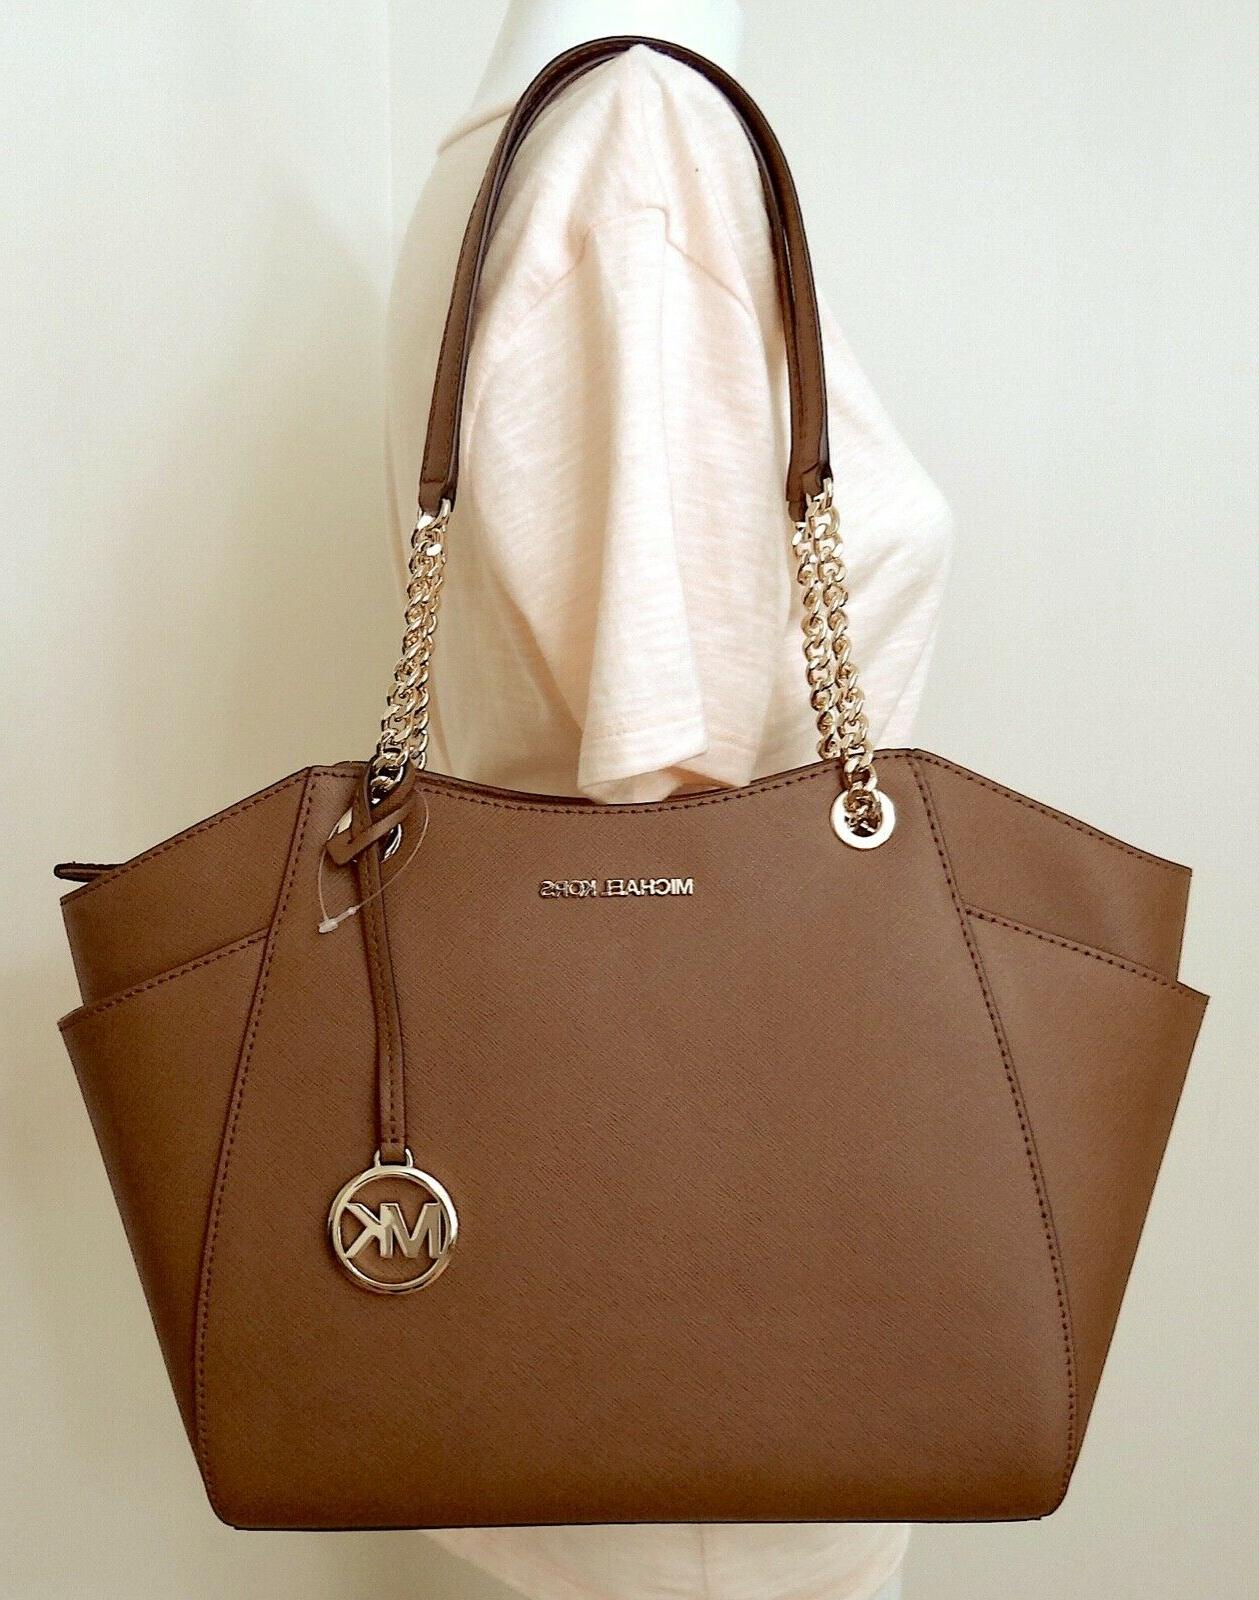 Michael Kors Chain Leather Large Shoulder Tote